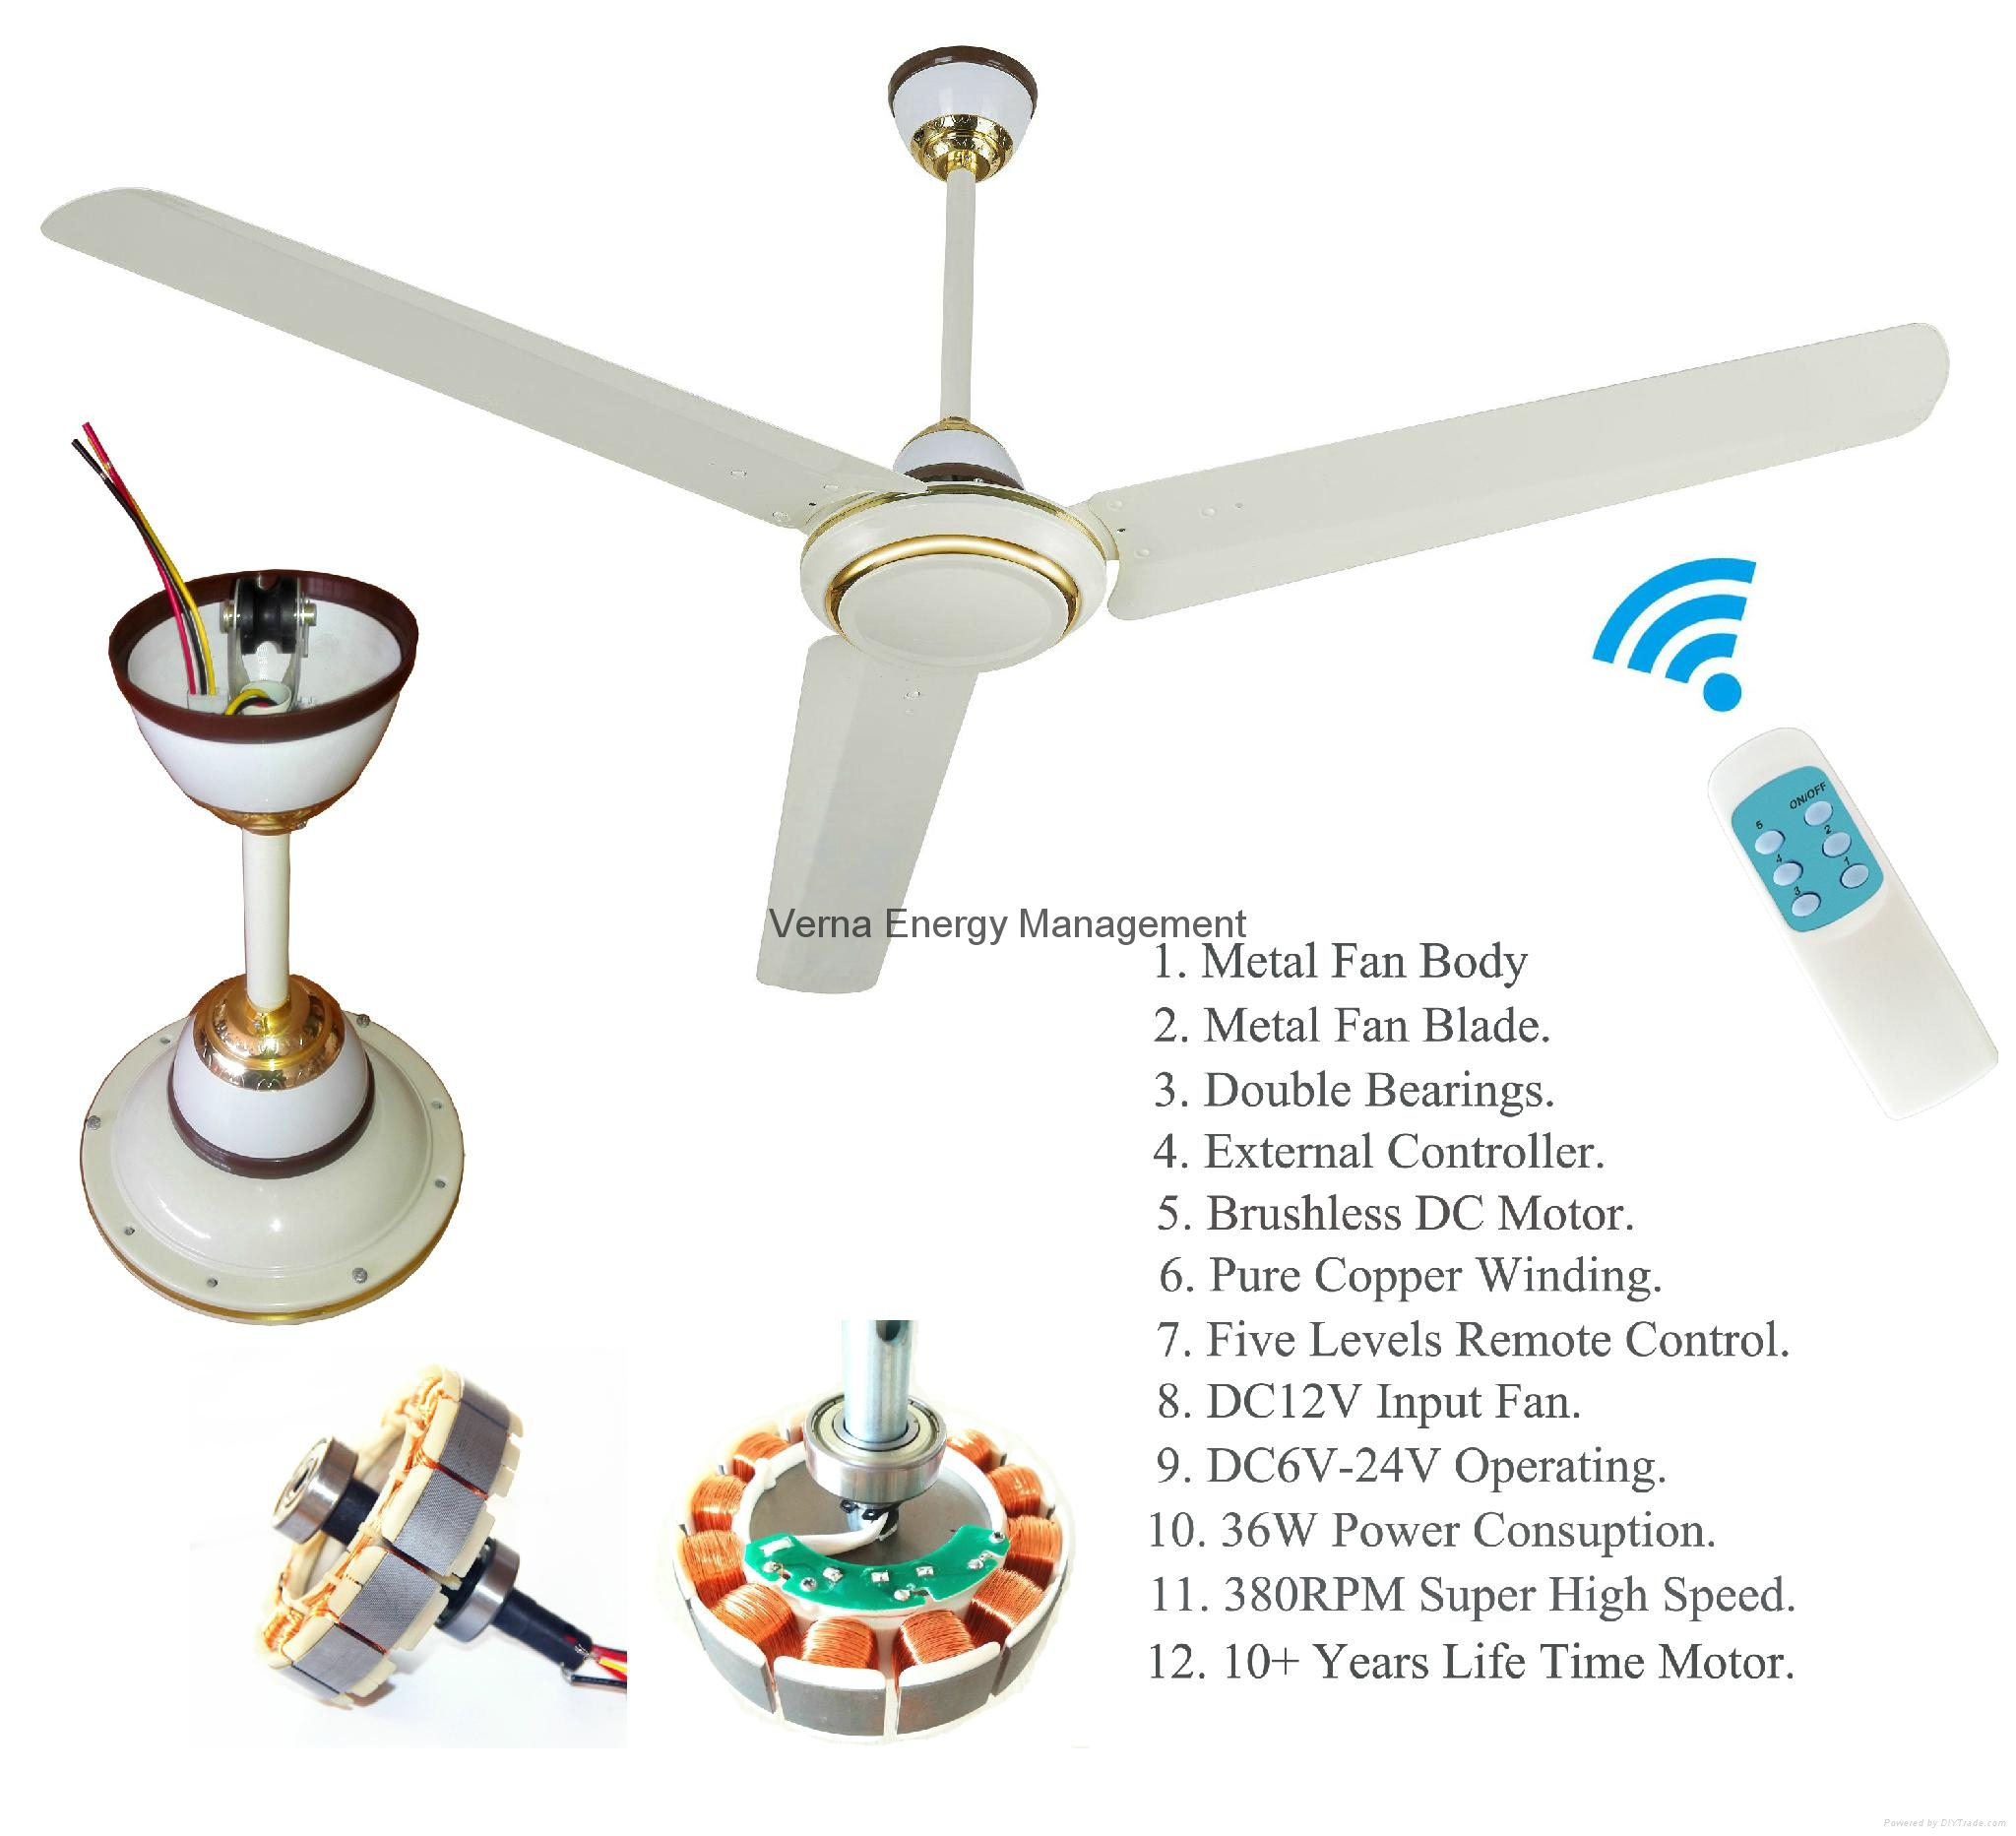 Super High Speed Solar 12v Dc Ceiling Fan 56 U0026quot  380rpm 36w